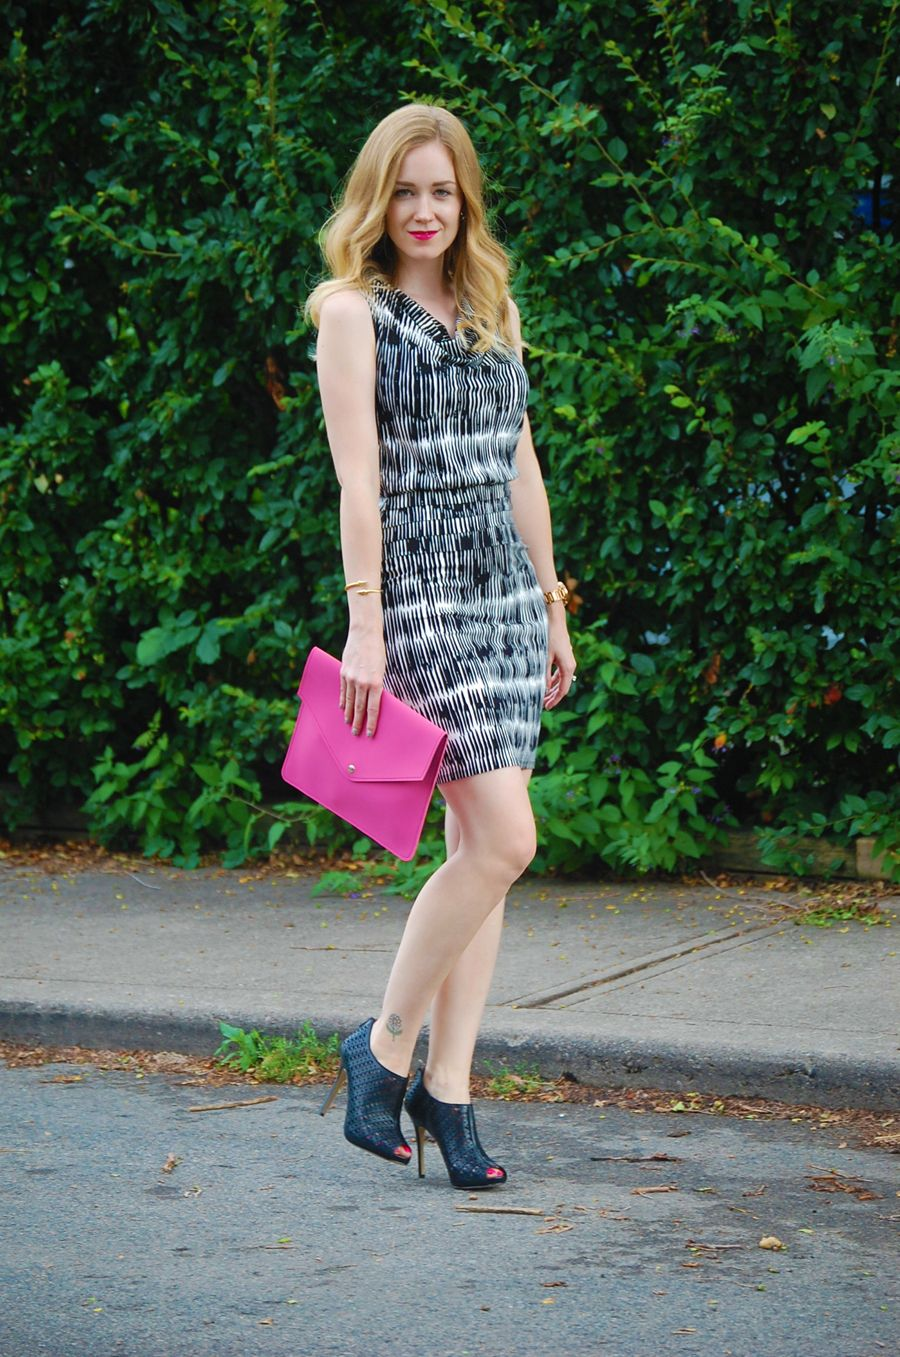 Black and White Dress from Ann Taylor with a pop of pink